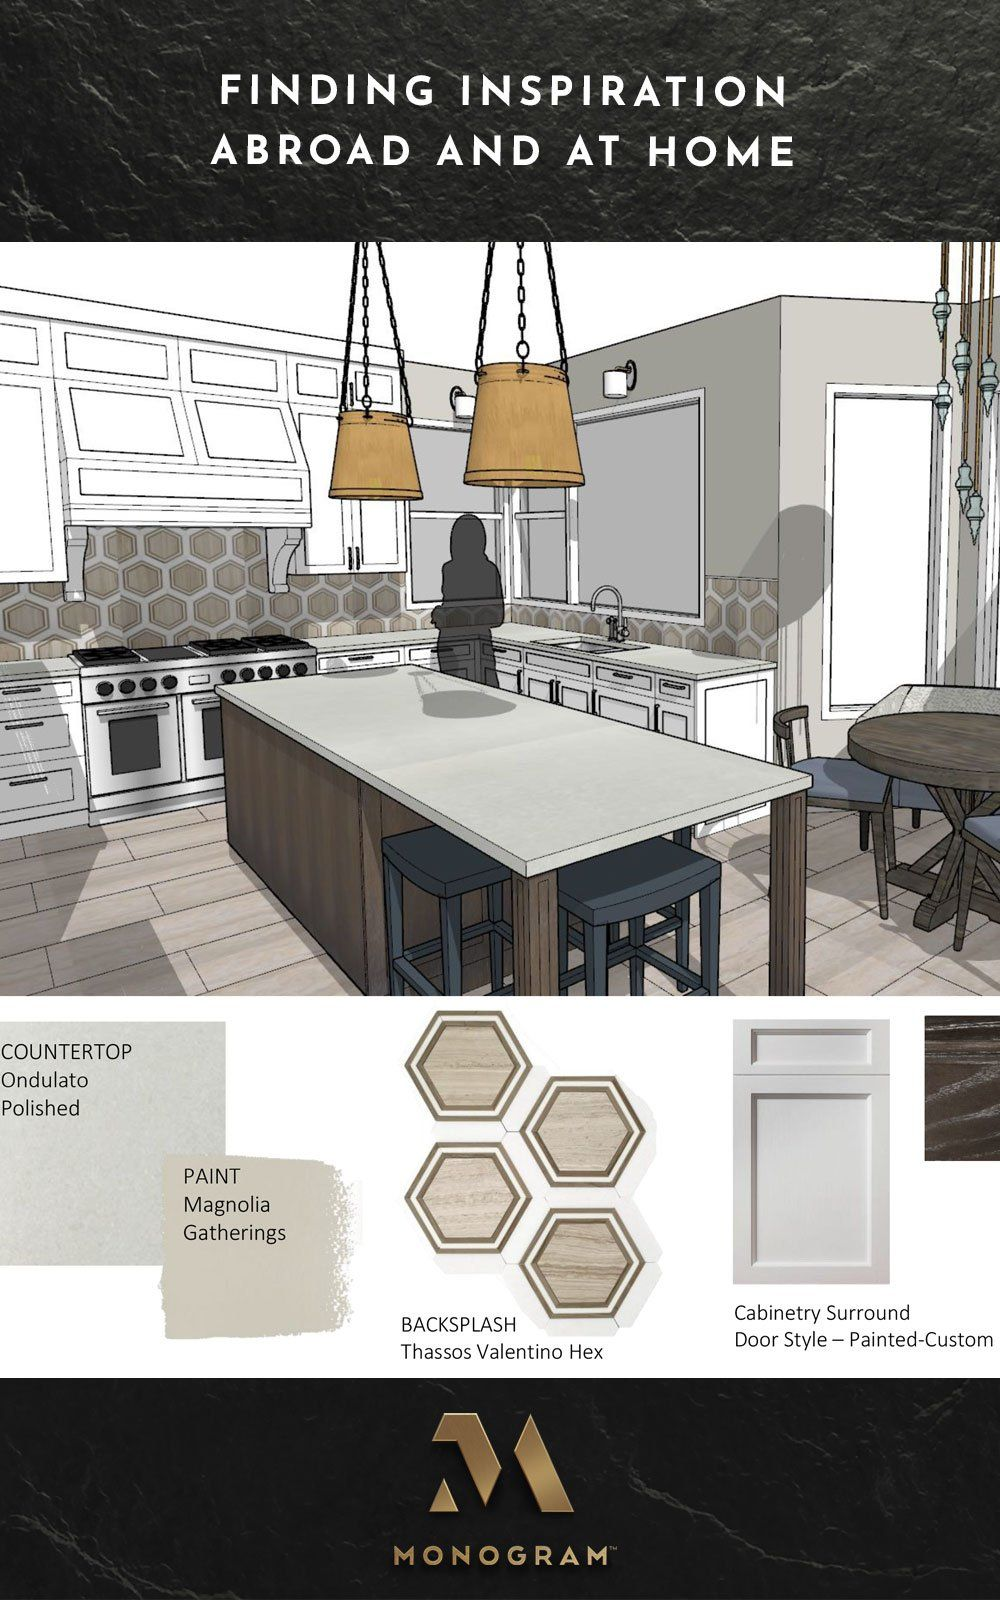 Dawn Wilkinson Ceo And President Of Seattle Based Six Walls Interior Design Finds Inspiration In Tr Interior Wall Design Built In Dishwasher Kitchen Projects